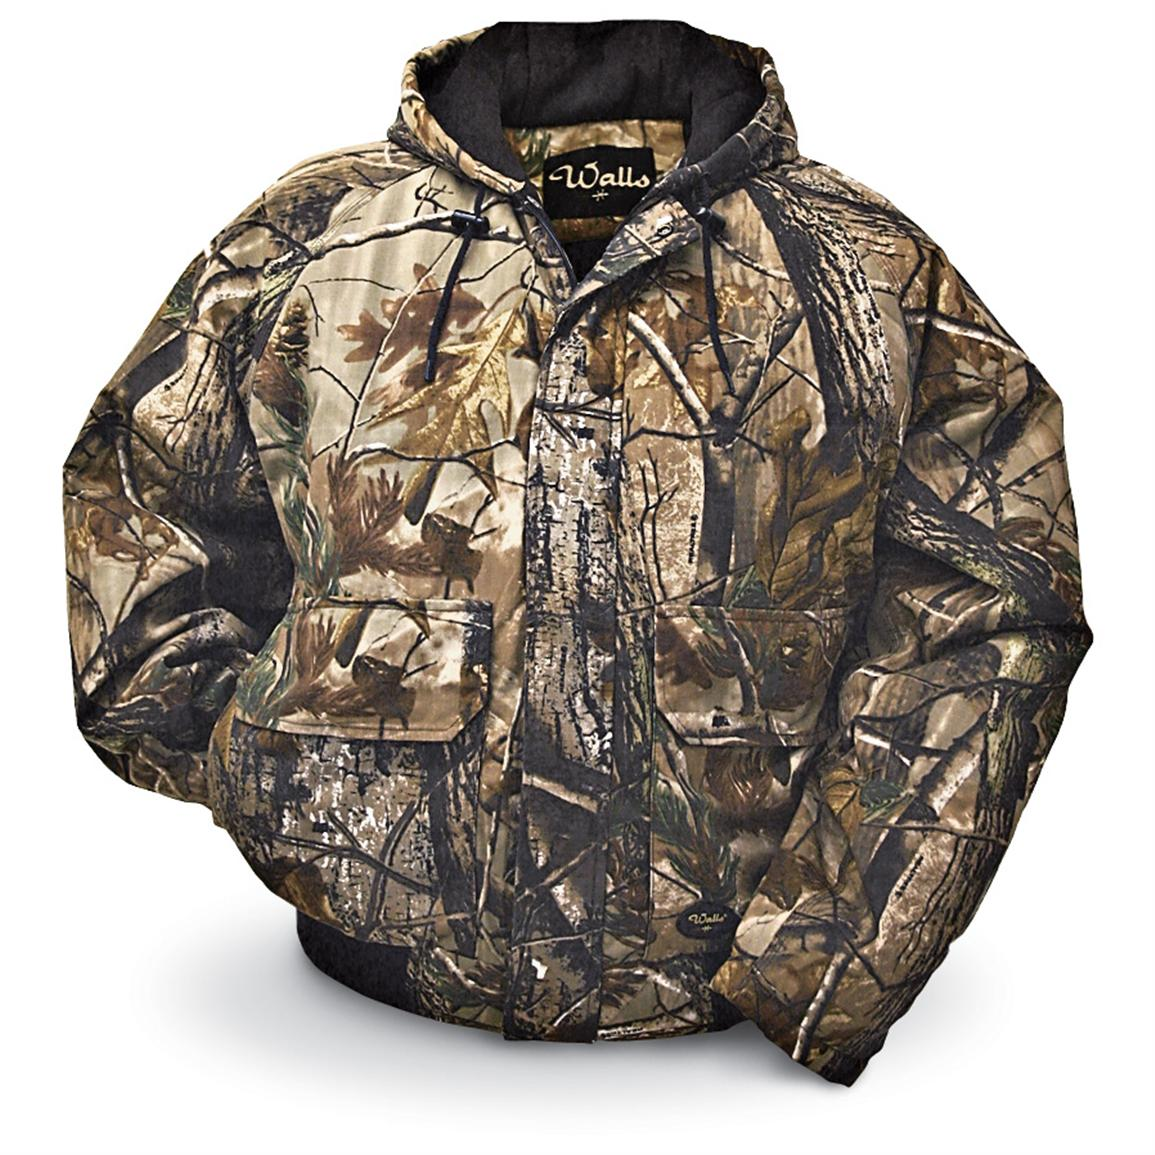 Walls Legend Insulated Hooded Jacket, Realtree All Purpose